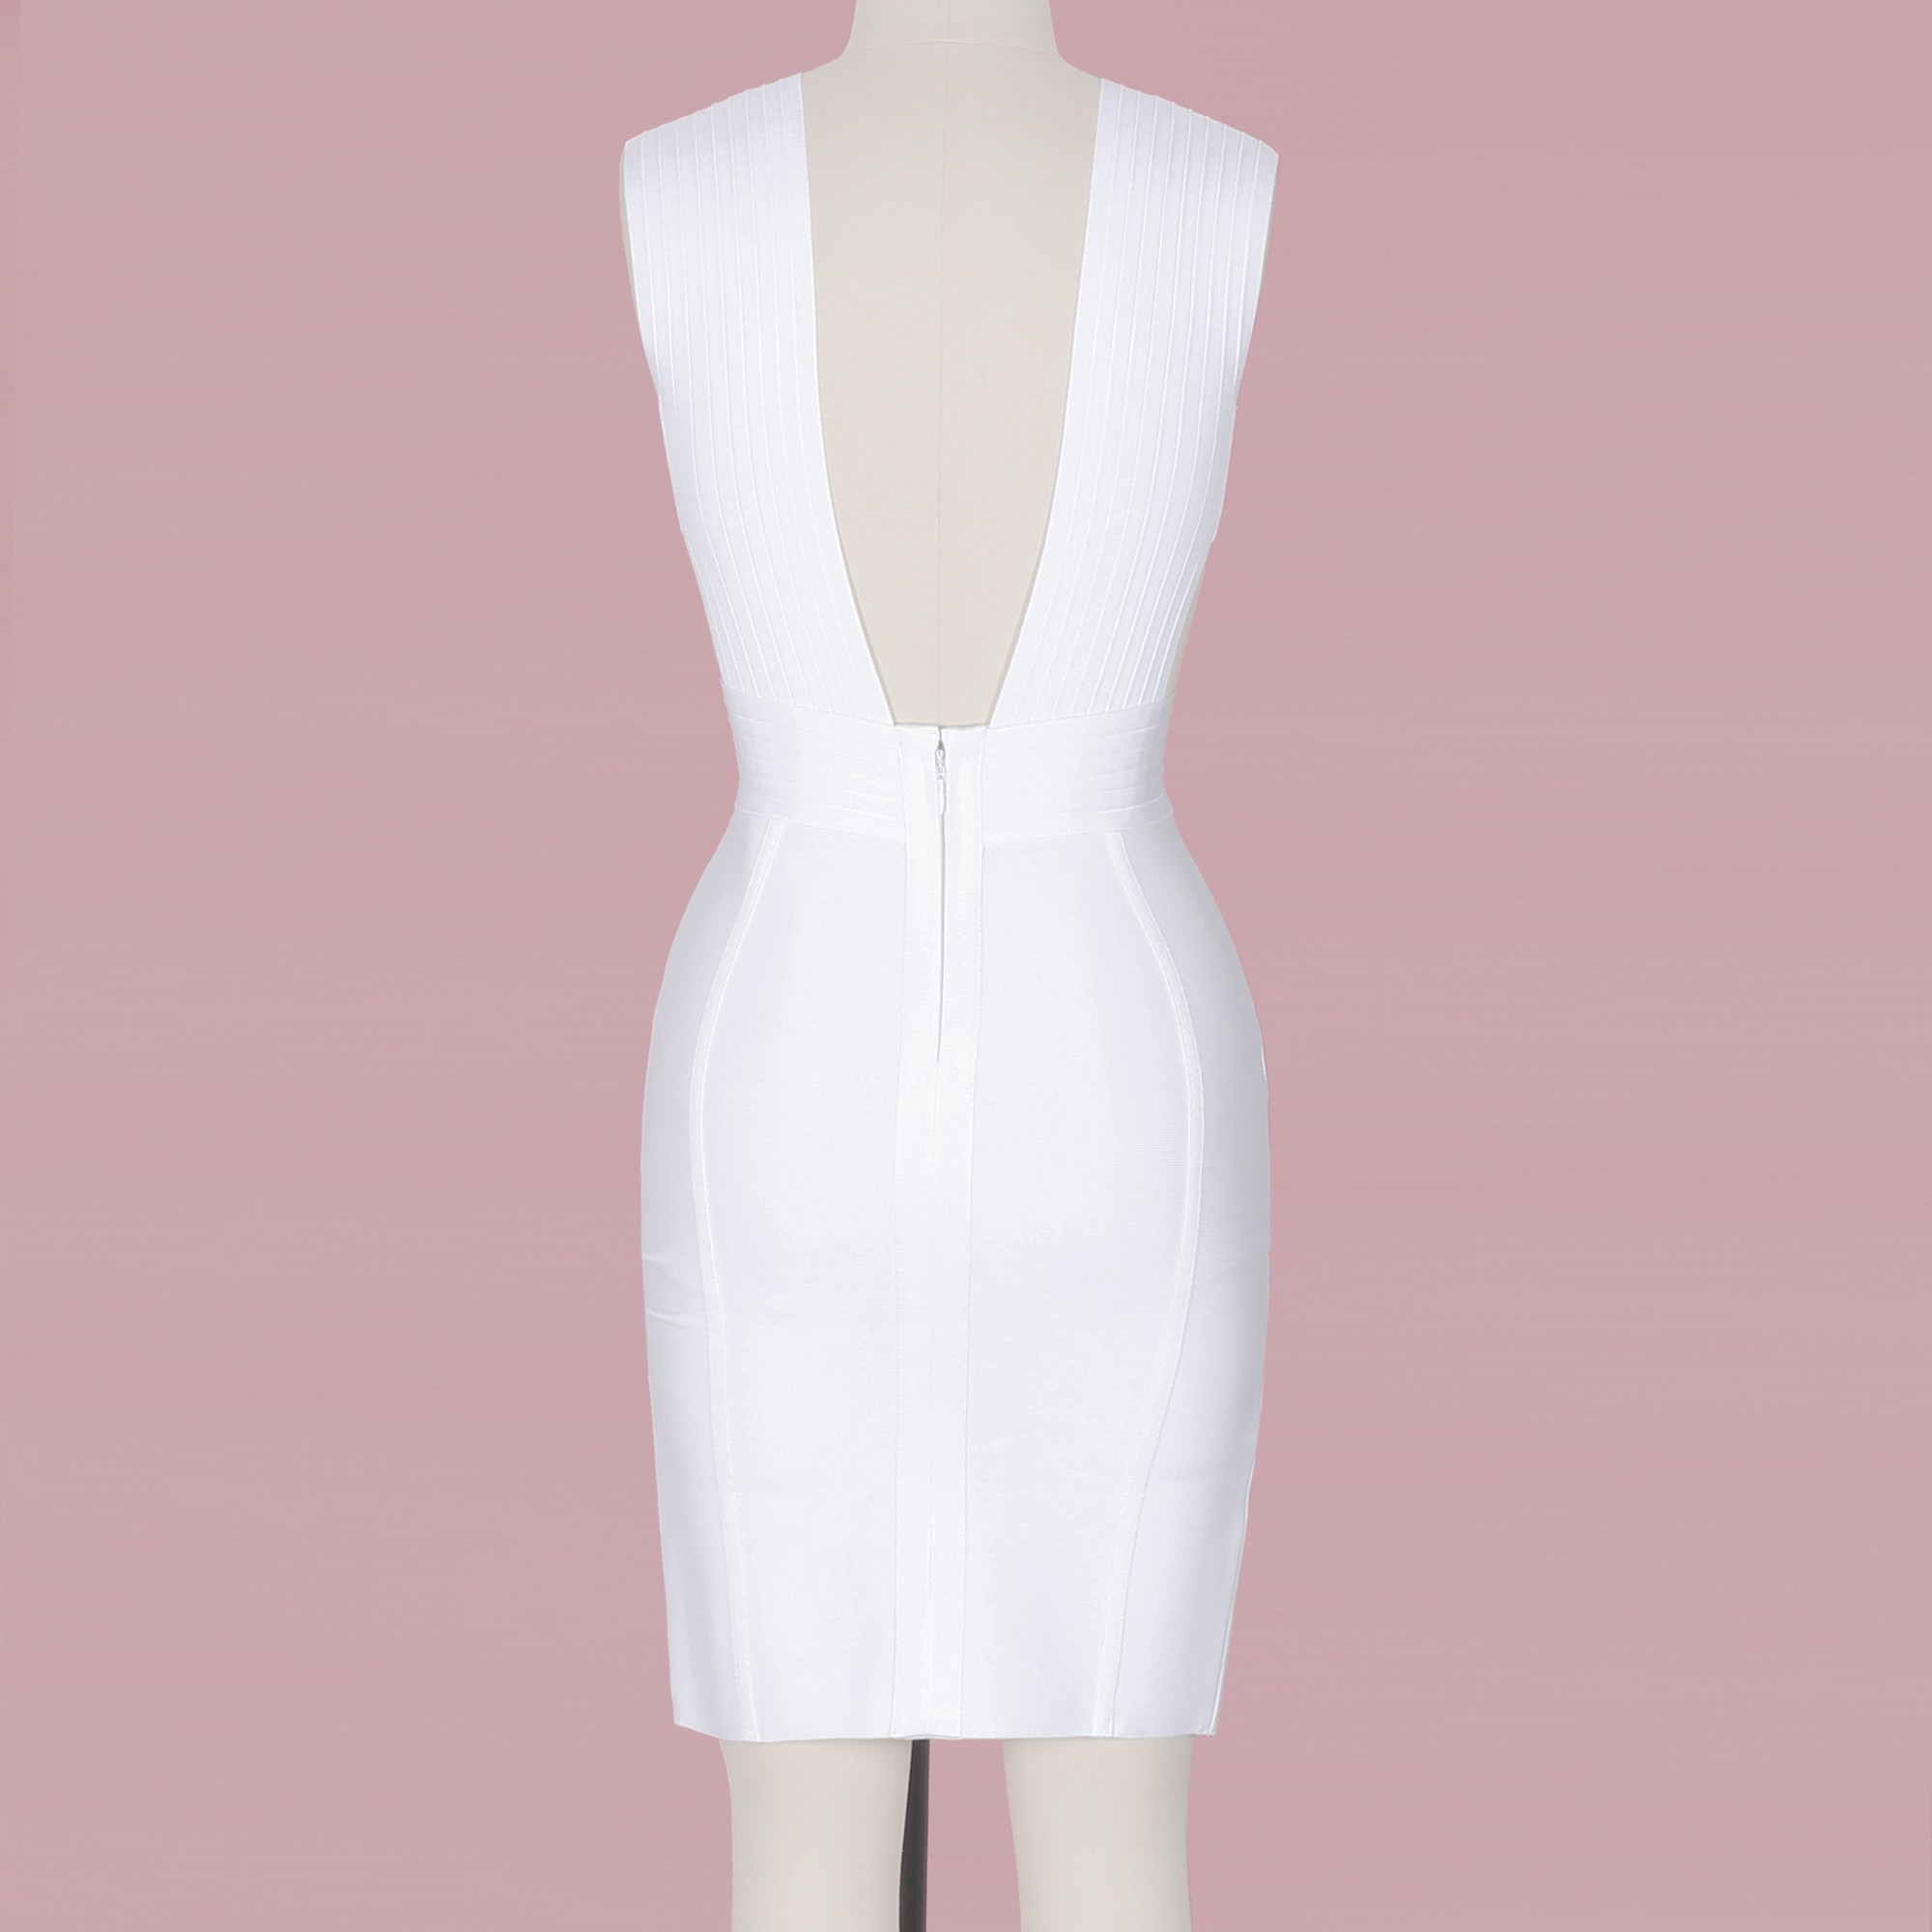 White V Neck Sleeveless One Piece Plain Side Slitted Fashion Bandage Dress HI864-White